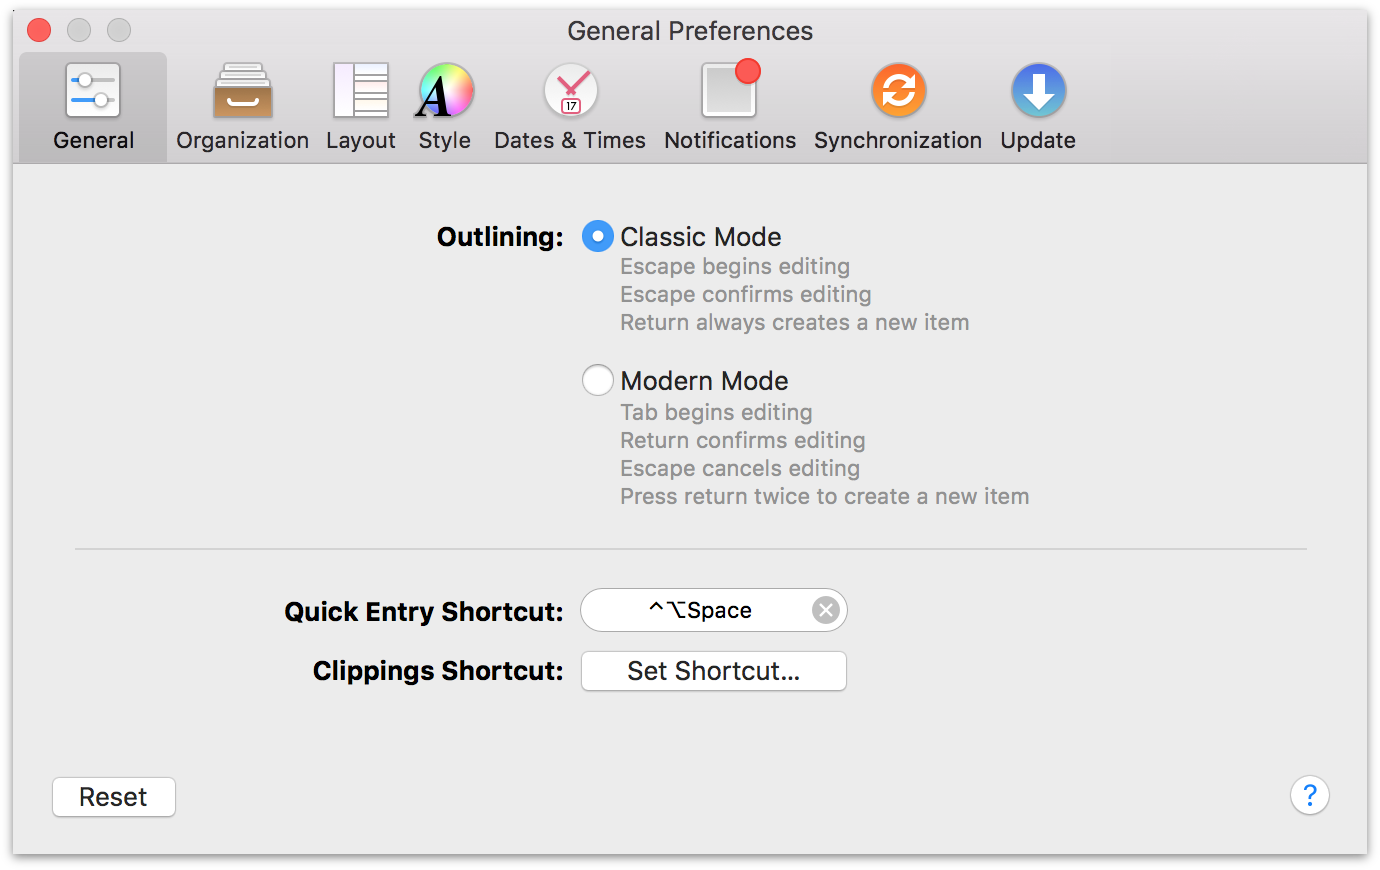 OmniFocus 2 for Mac General Preferences.